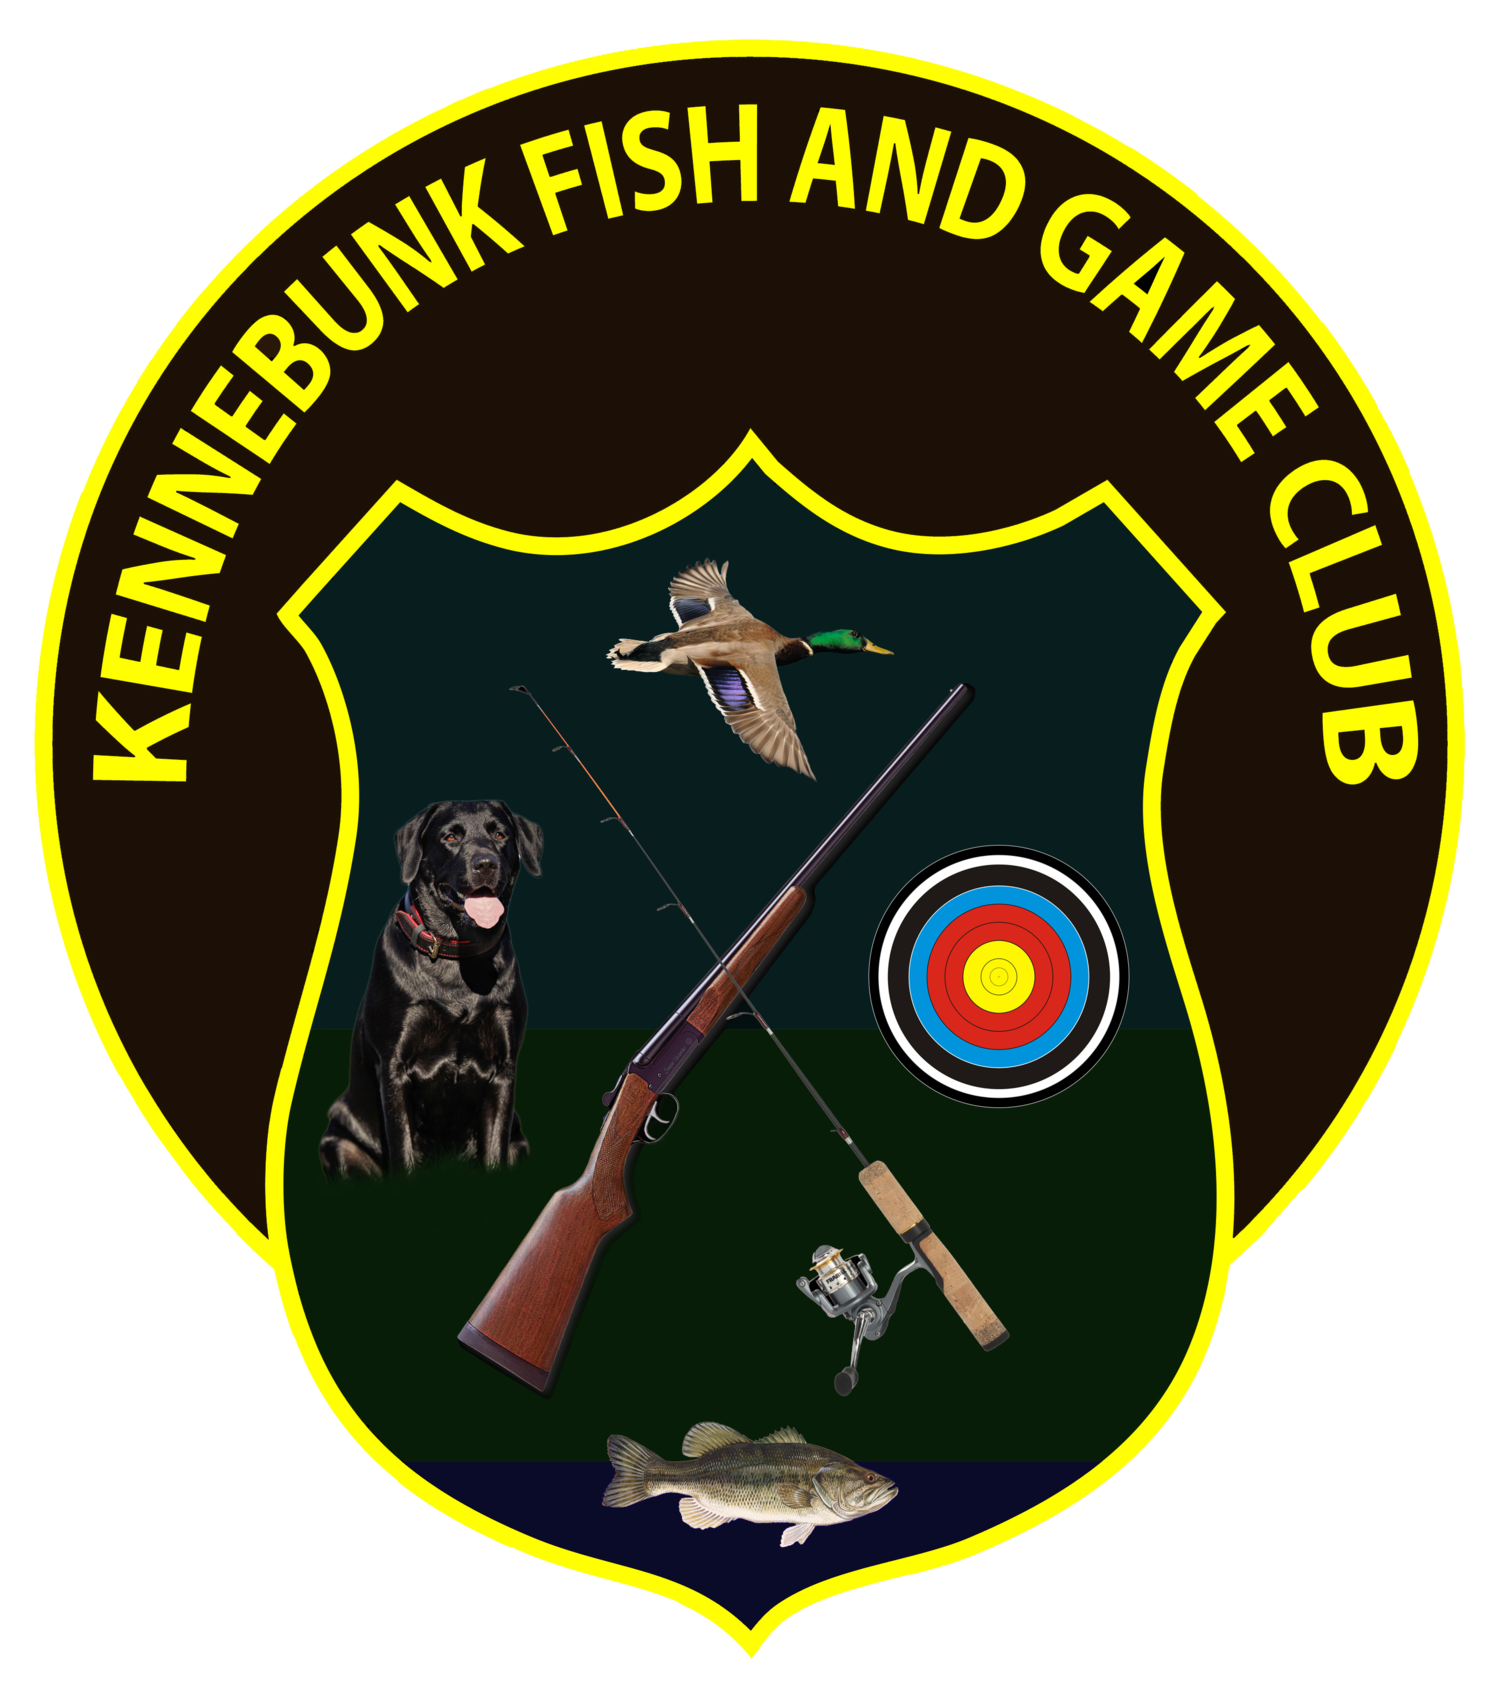 Kennebunk Fish and Game Club